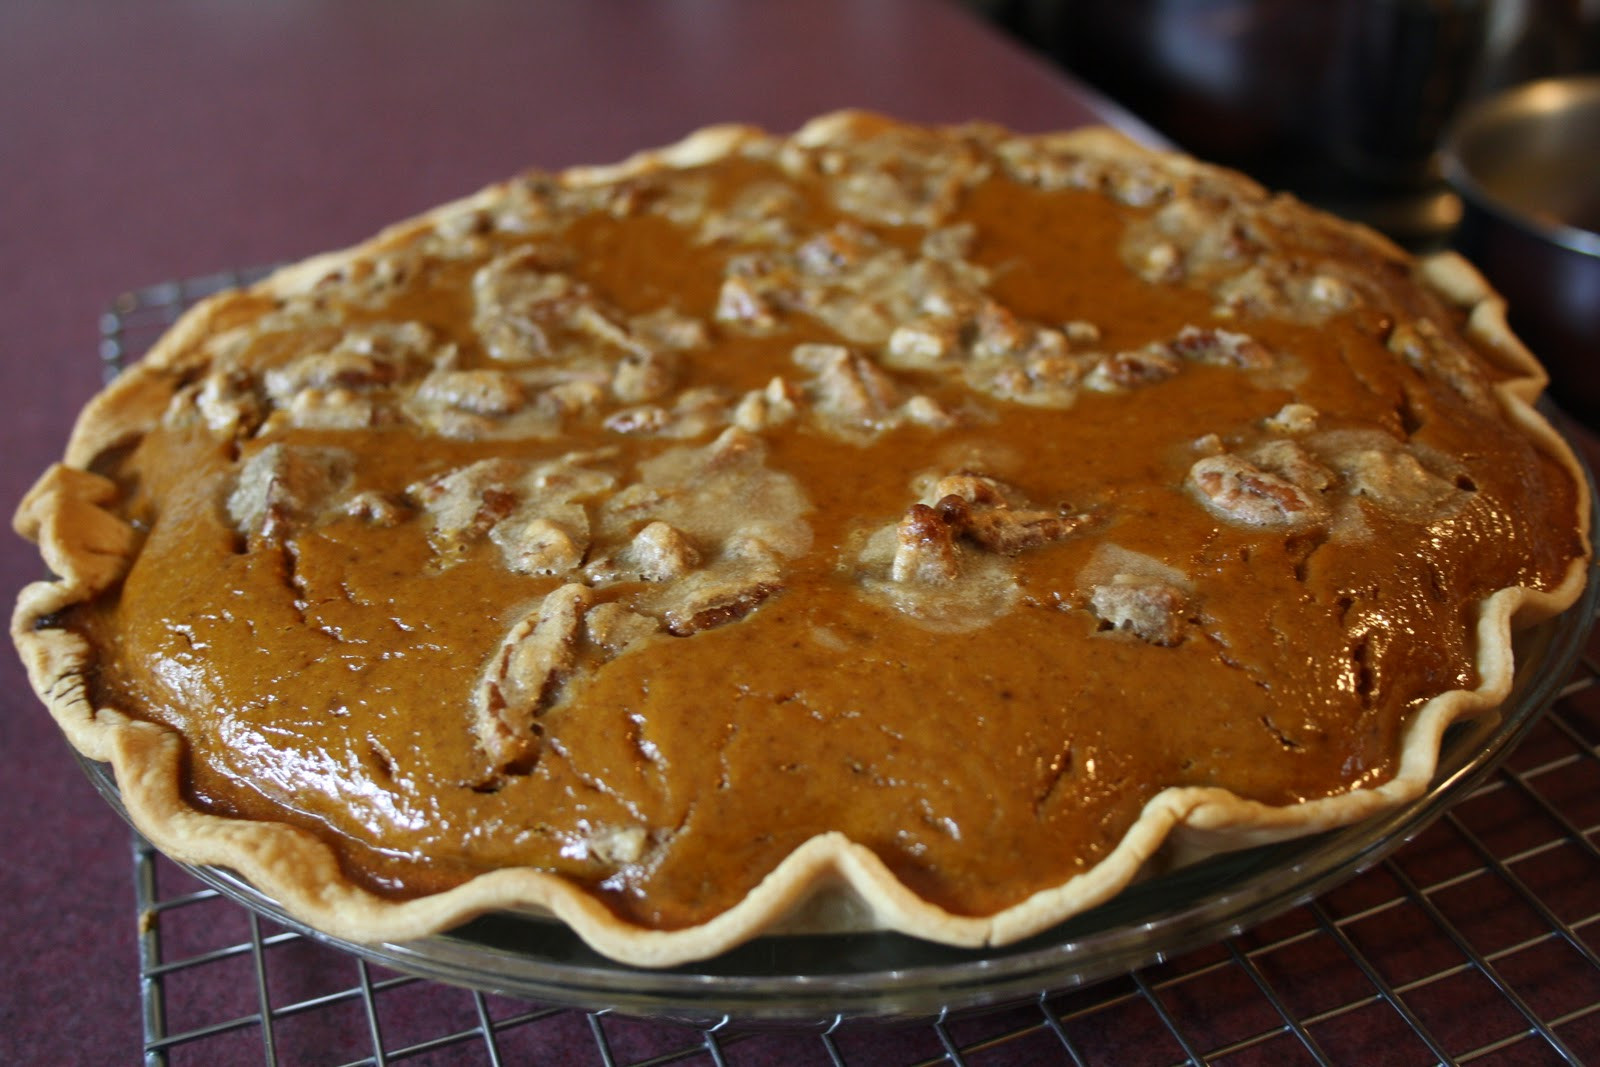 Thanksgiving Pumpkin Pie  Meals with Michelle Turkey & Pumpkin Pie Happy